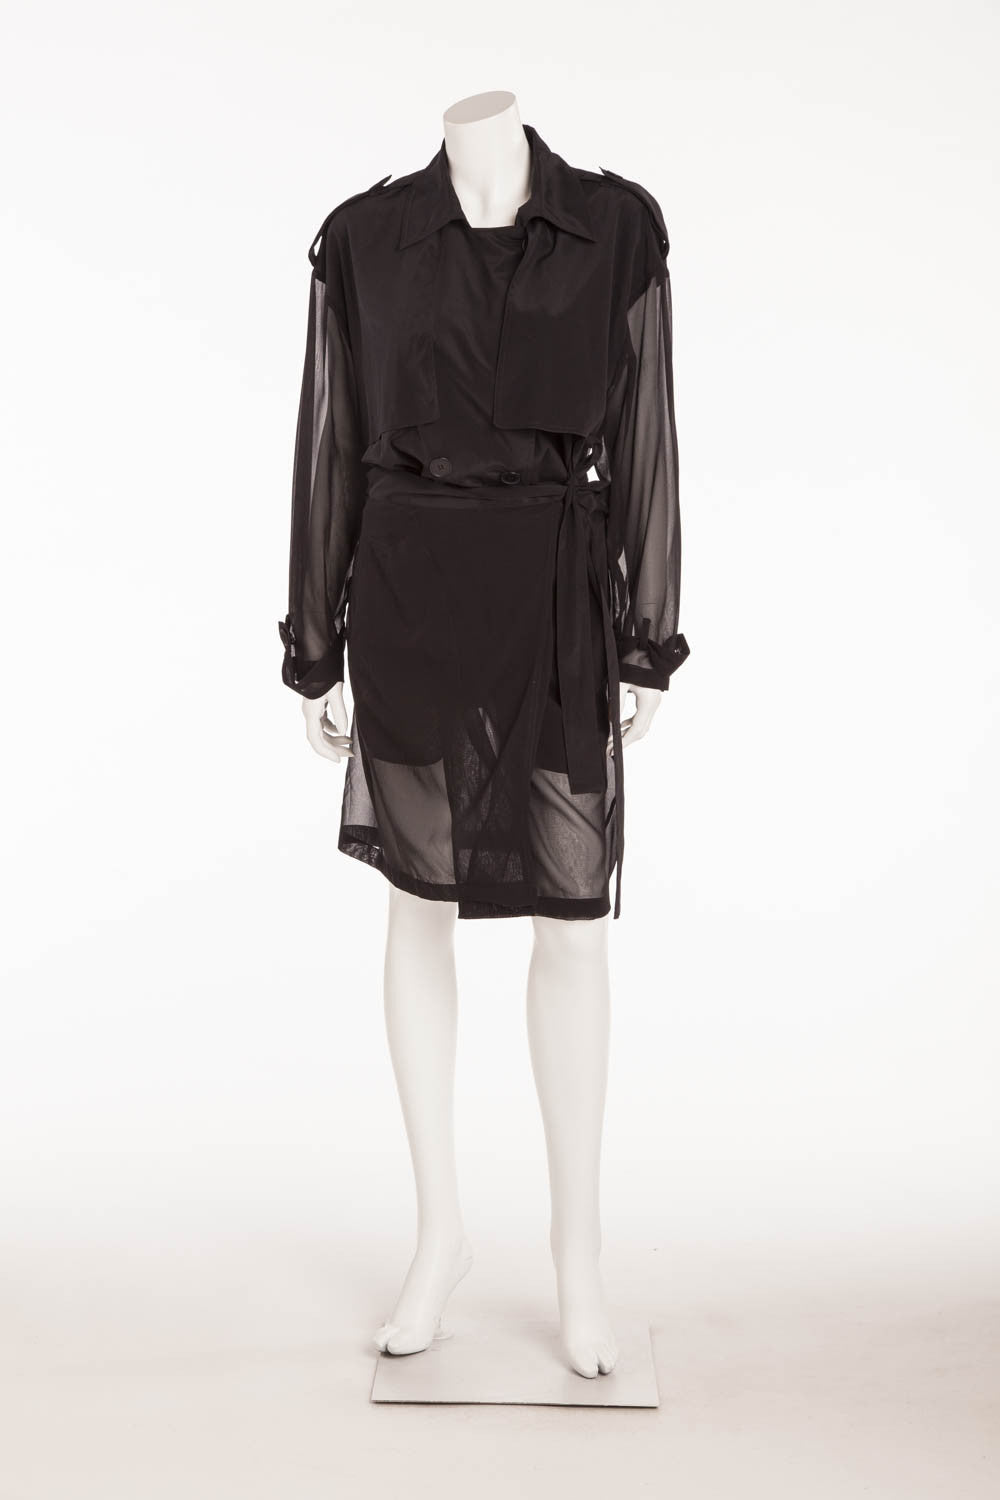 DKNY - Black Coat Button Up Sheer Sleeves - S